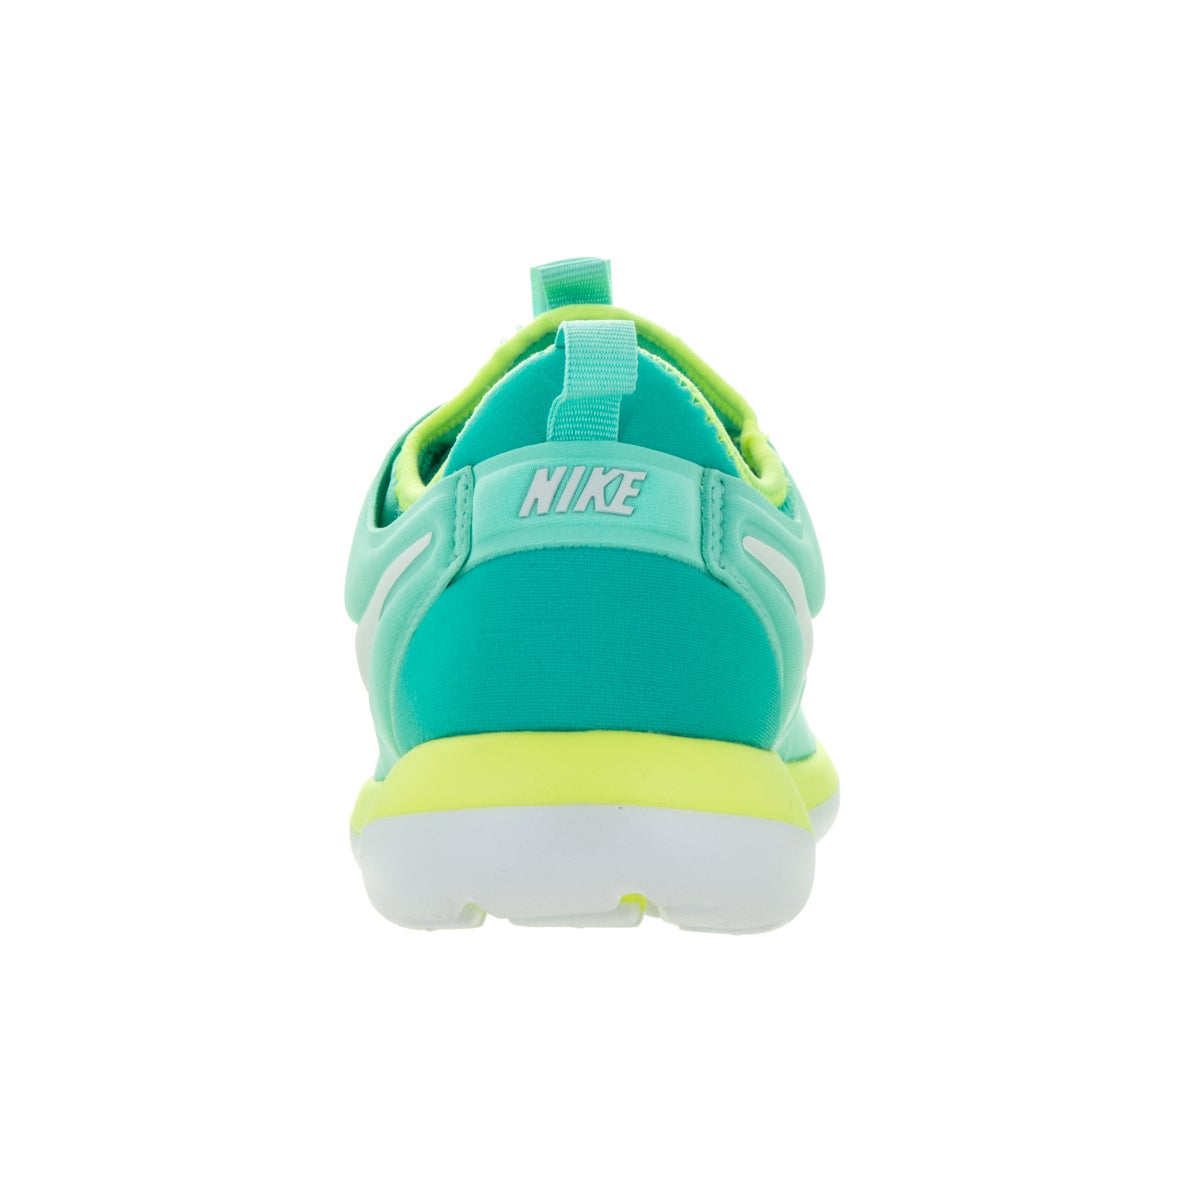 uk availability 8d2bf 60dea Shop Nike Kids Roshe Two (GS) Hyper Turquoise Metallic Summit White Volt  Running Shoes - Free Shipping Today - Overstock - 13394668